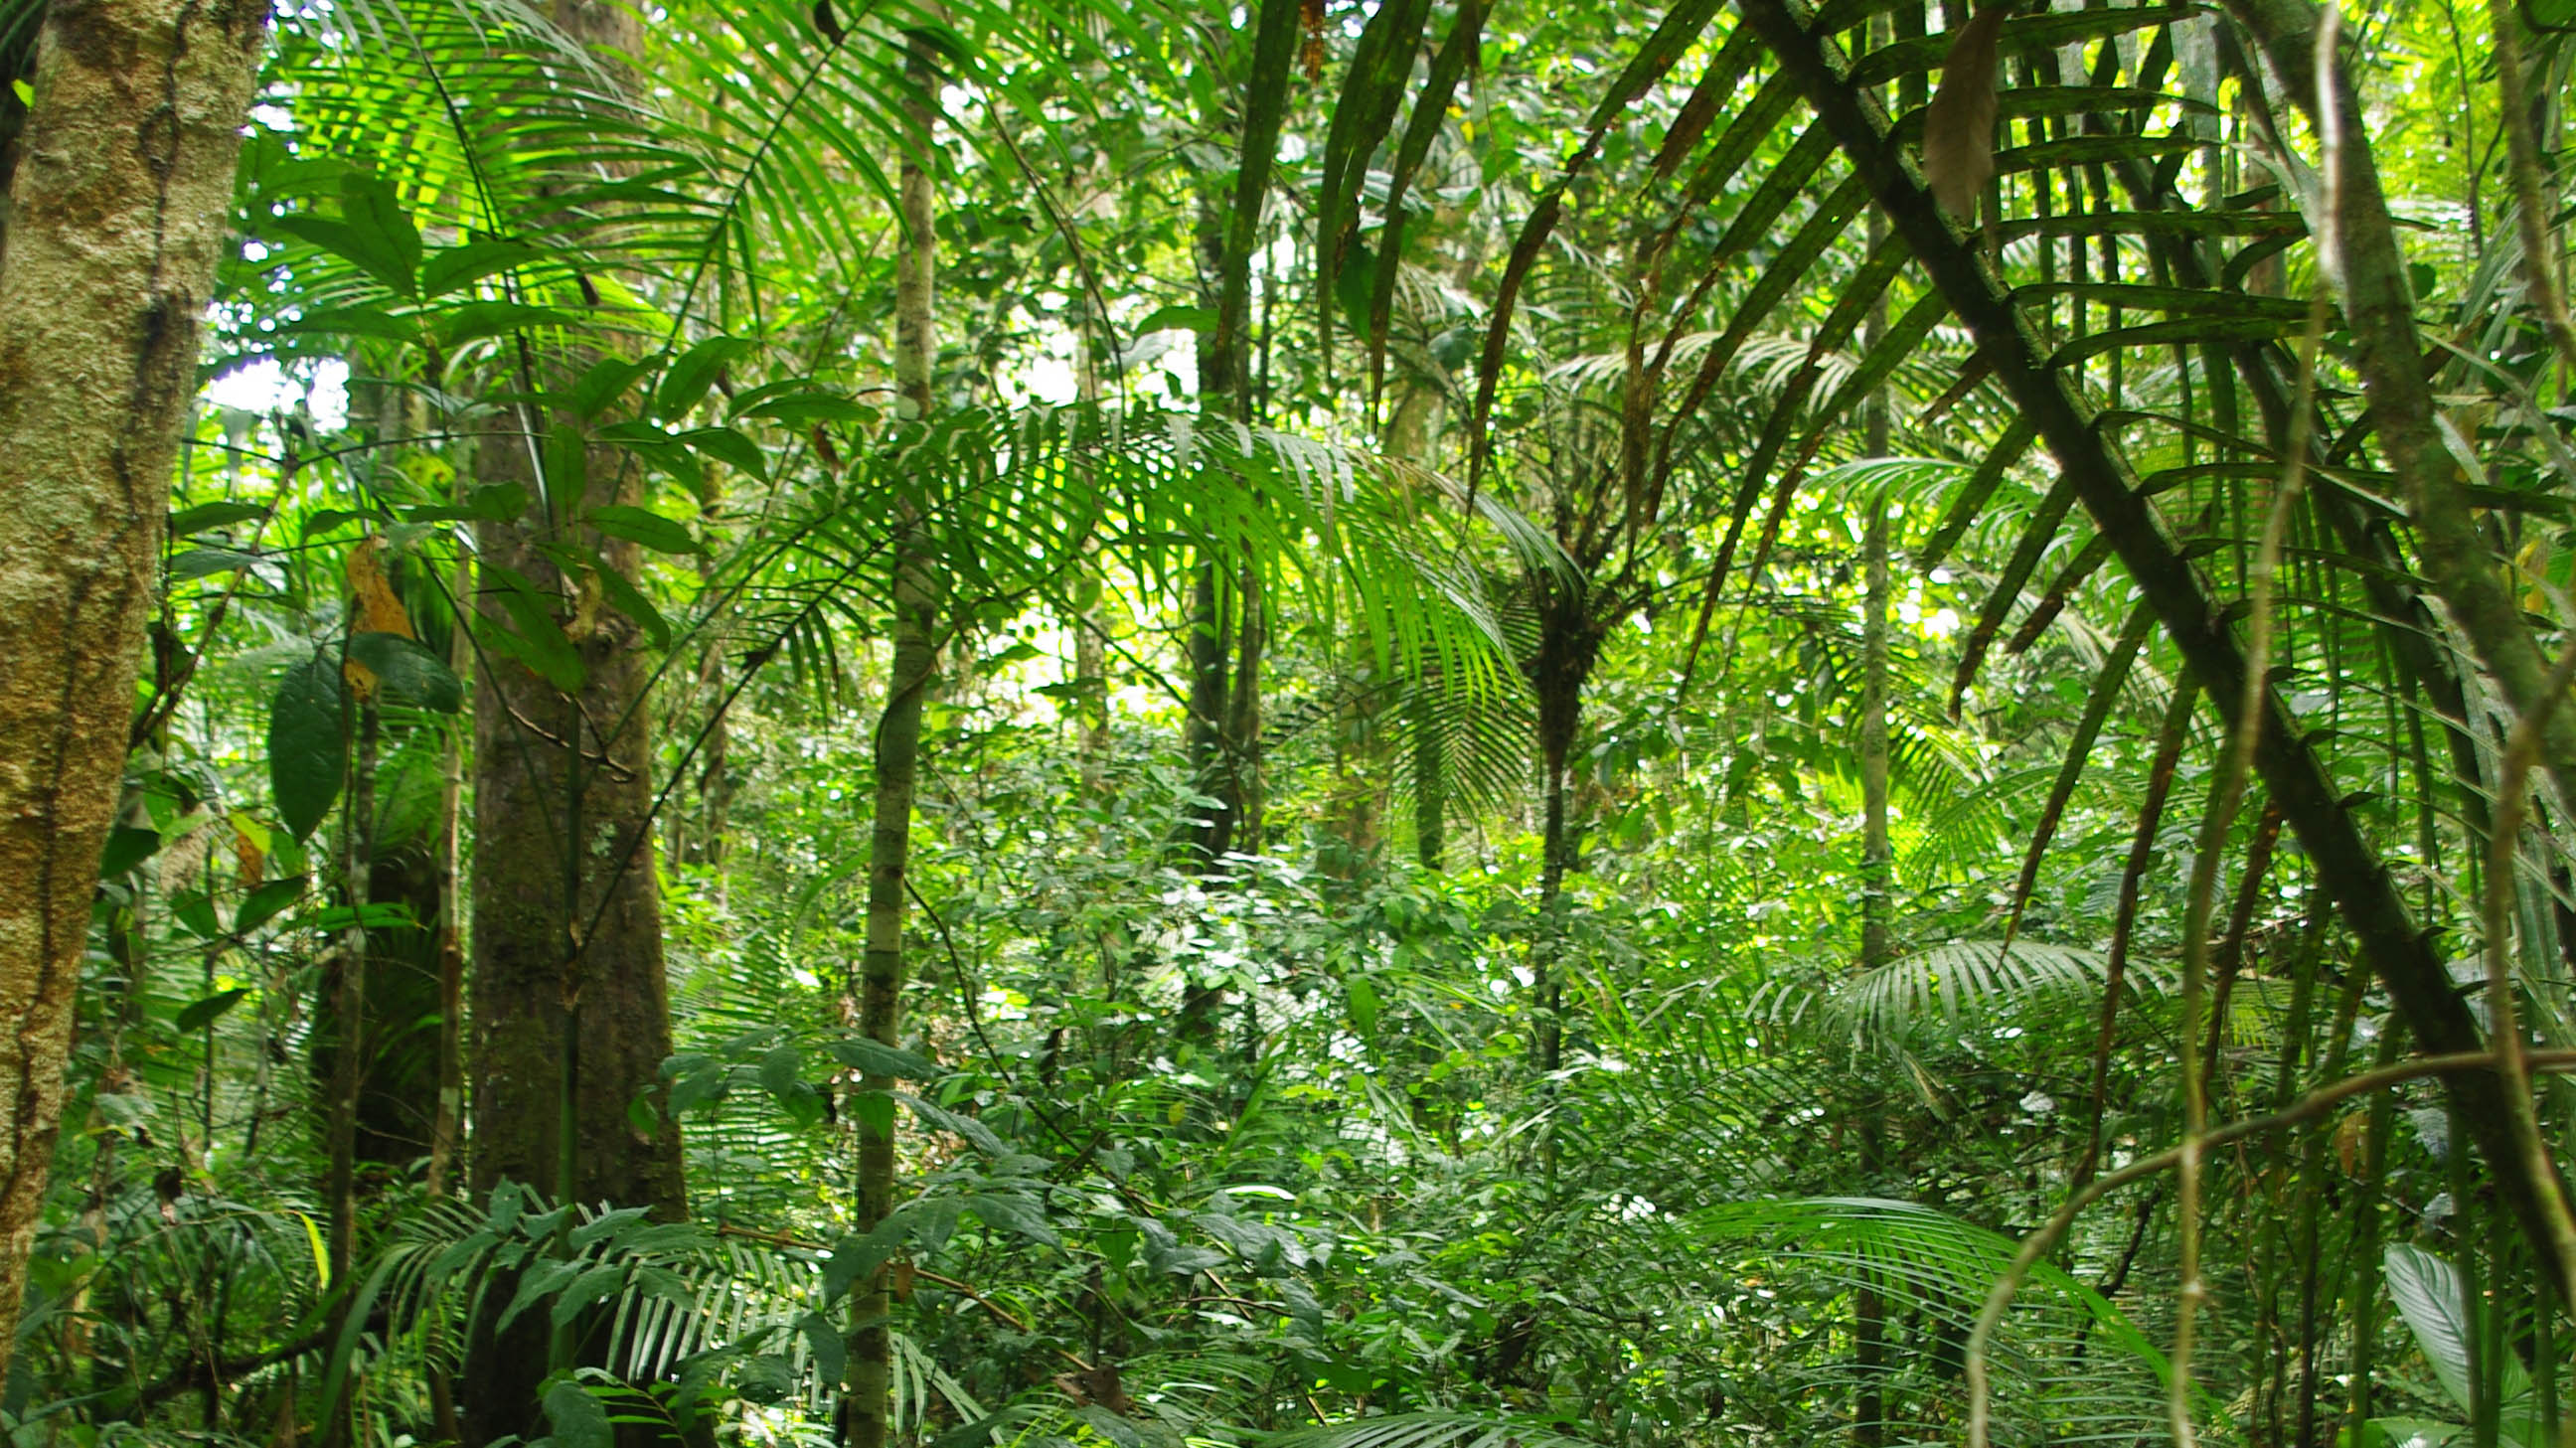 amazon rainforest research paper outline The main topic of this debate is the effects of the amazon deforestation on the people who live in it, this will be the focus of this research paper in this paper, i will discuss the history, causes, effects and solutions for the amazon rainforest deforestation.